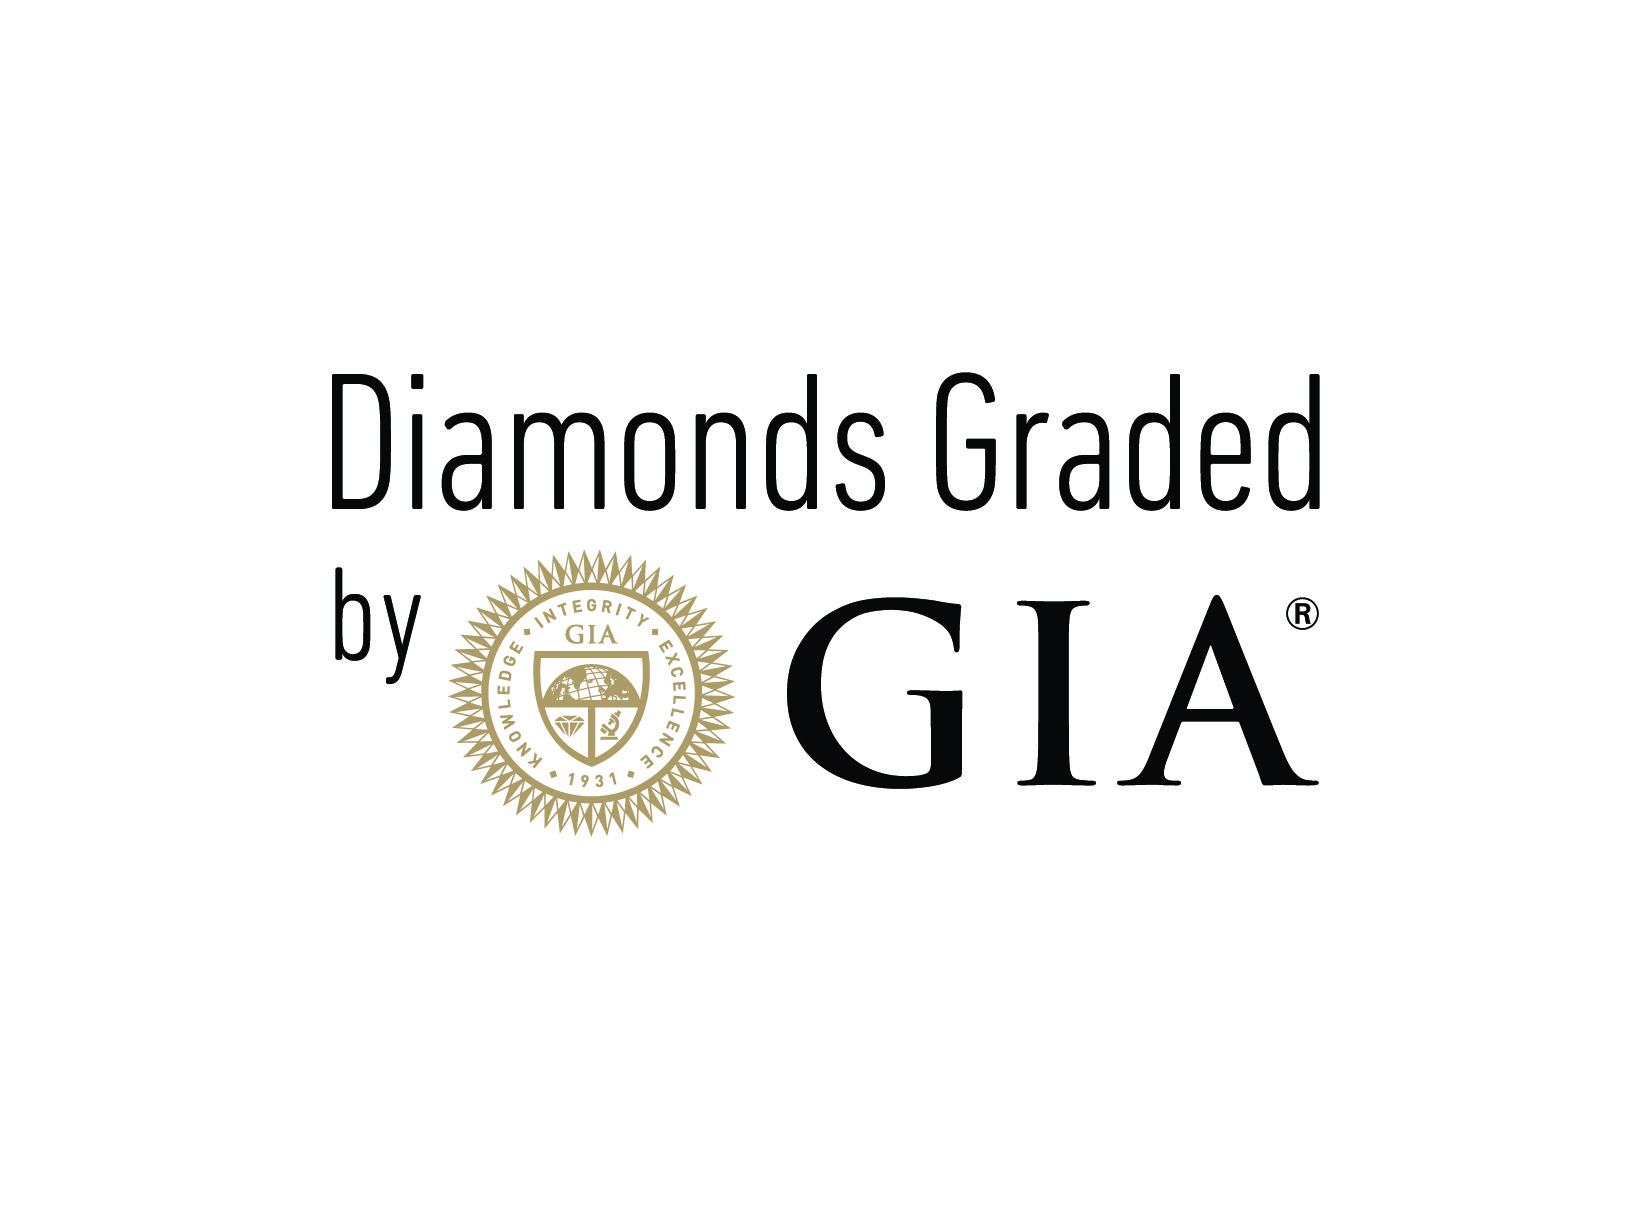 diamonds-graded-by-gia.jpg